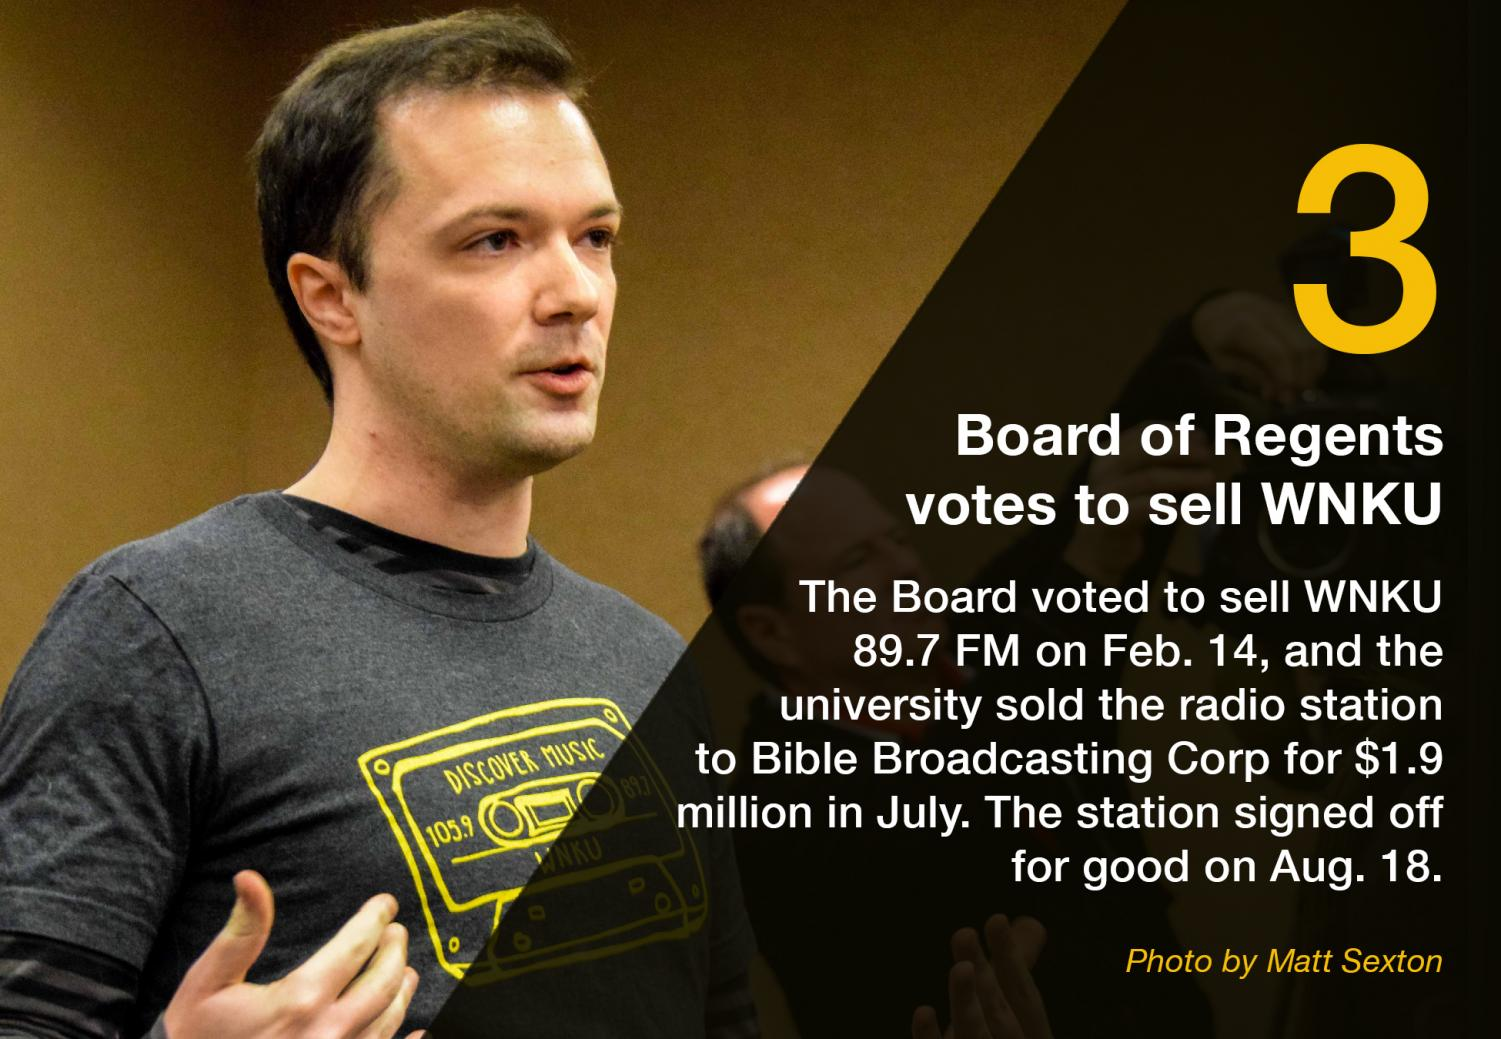 After+years+of+serving+the+Greater+Cincinnati+region%2C+the+Board+voted+to+sell+WNKU+89.7+FM+on+Feb.+14%2C+and+the+university+sold+the+radio+station+to+Bible+Broadcasting+Corp+for+%241.9+million+in+July.+The+station+signed+off+for+good+on+Aug.+18.